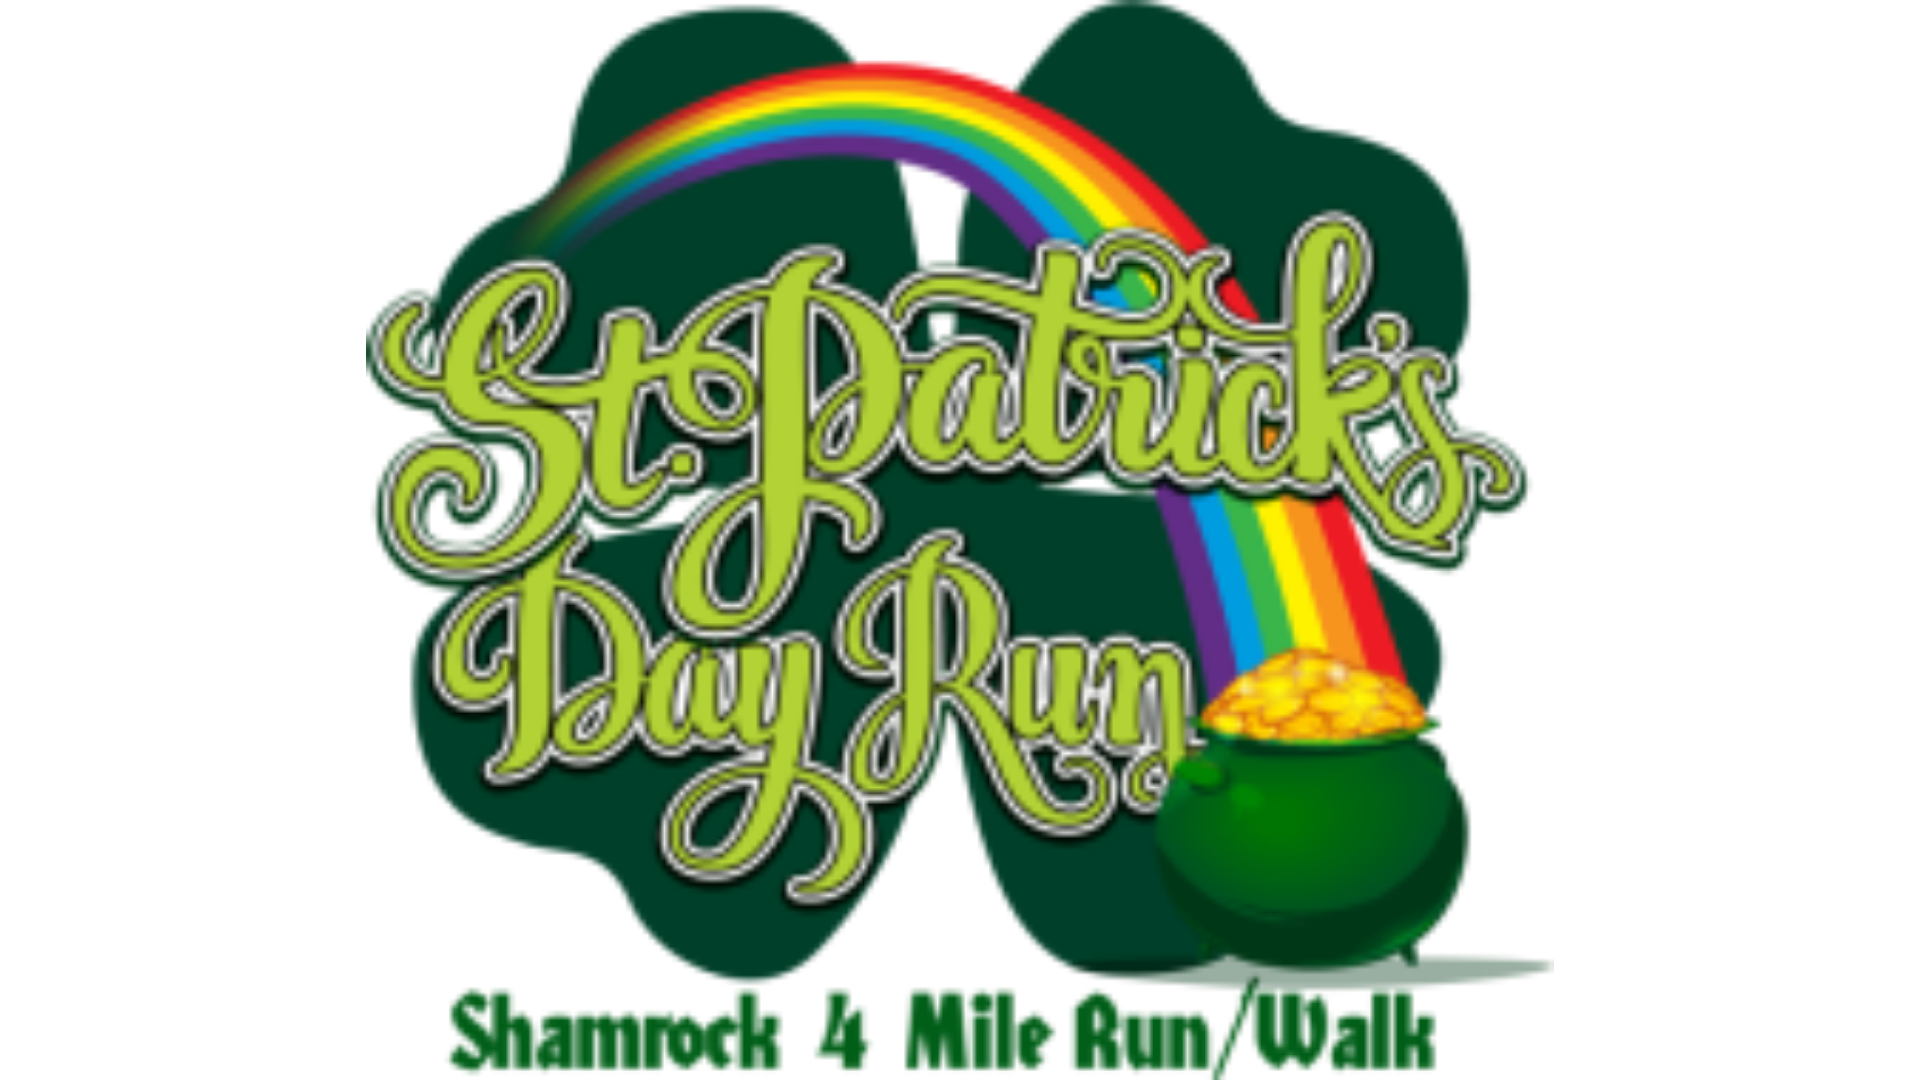 St. Patty's Day Run